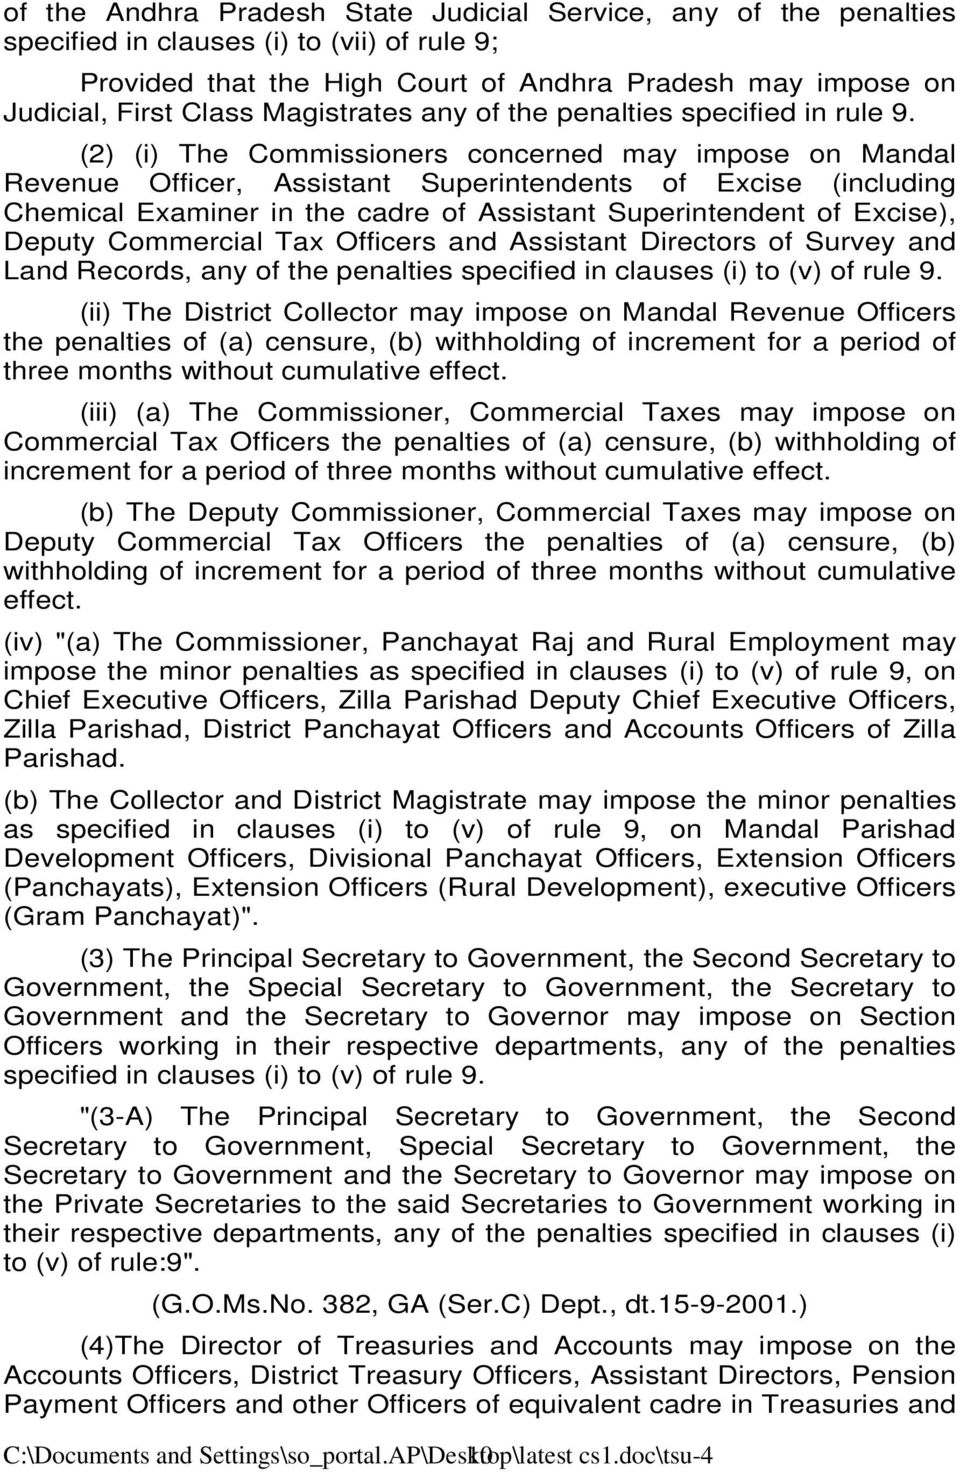 (2) (i) The Commissioners concerned may impose on Mandal Revenue Officer, Assistant Superintendents of Excise (including Chemical Examiner in the cadre of Assistant Superintendent of Excise), Deputy